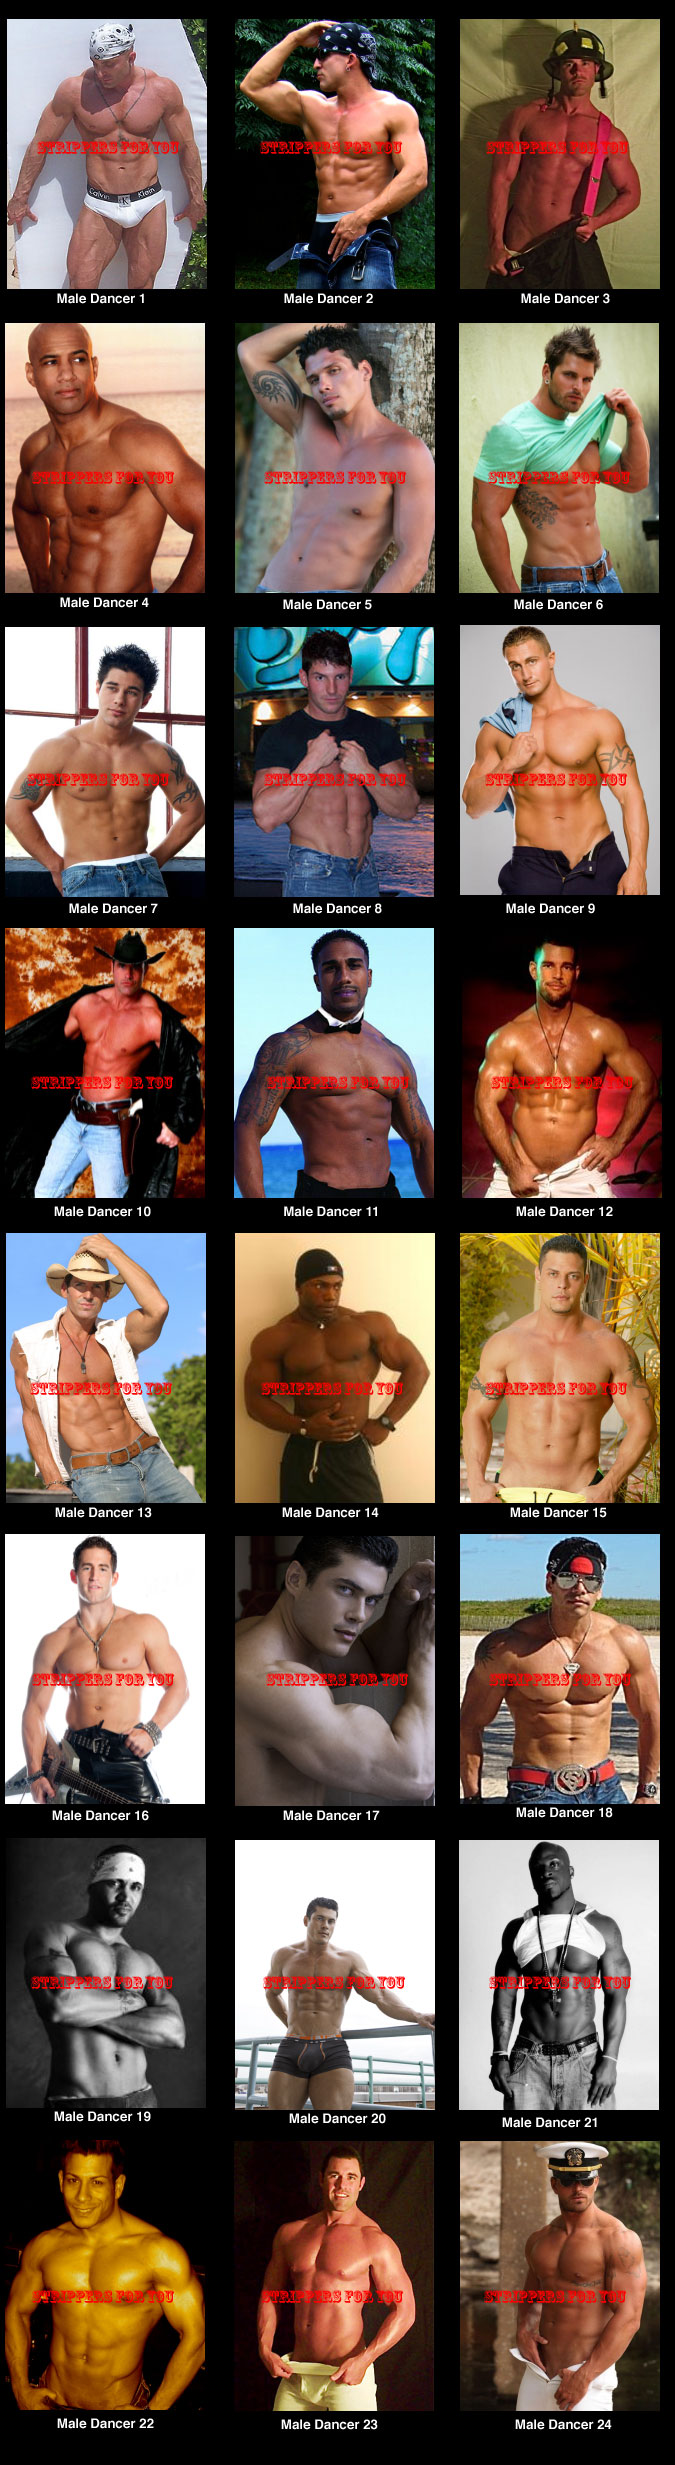 Lincoln male strippers